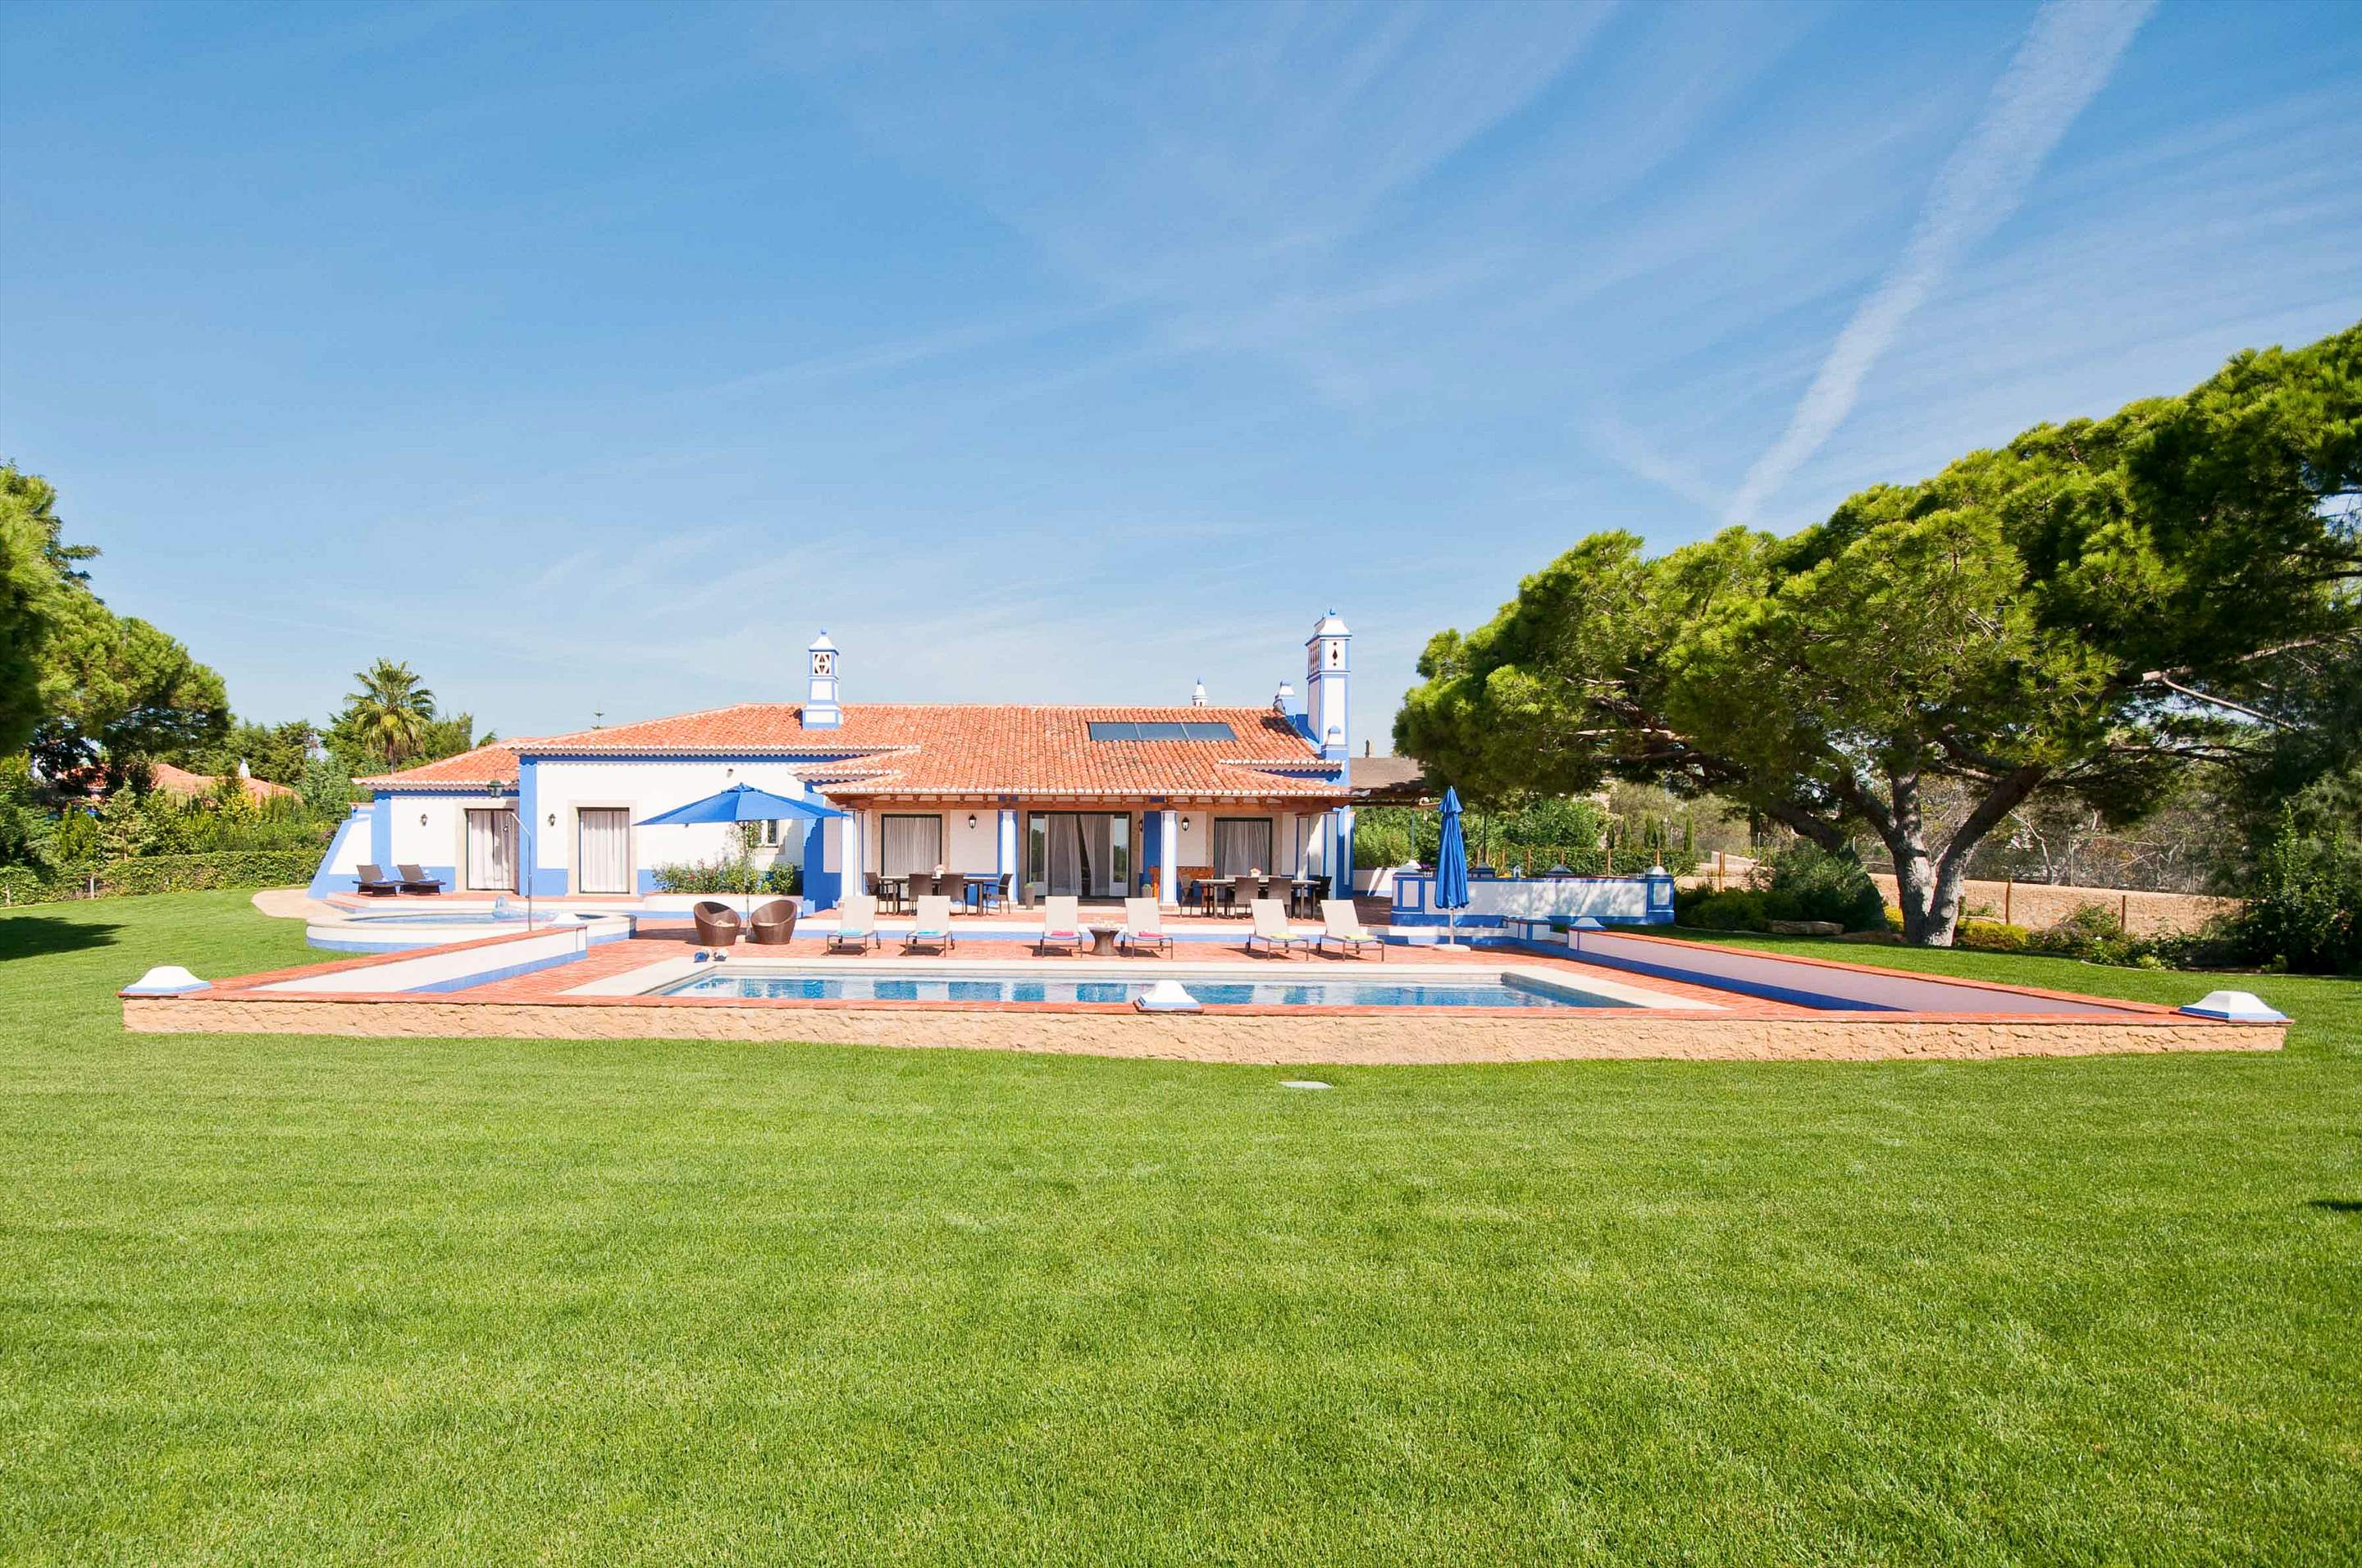 Villa Mirante 1, Five Bedroom Rate, 5 bedroom villa in Albufeira Area, Algarve Photo #2